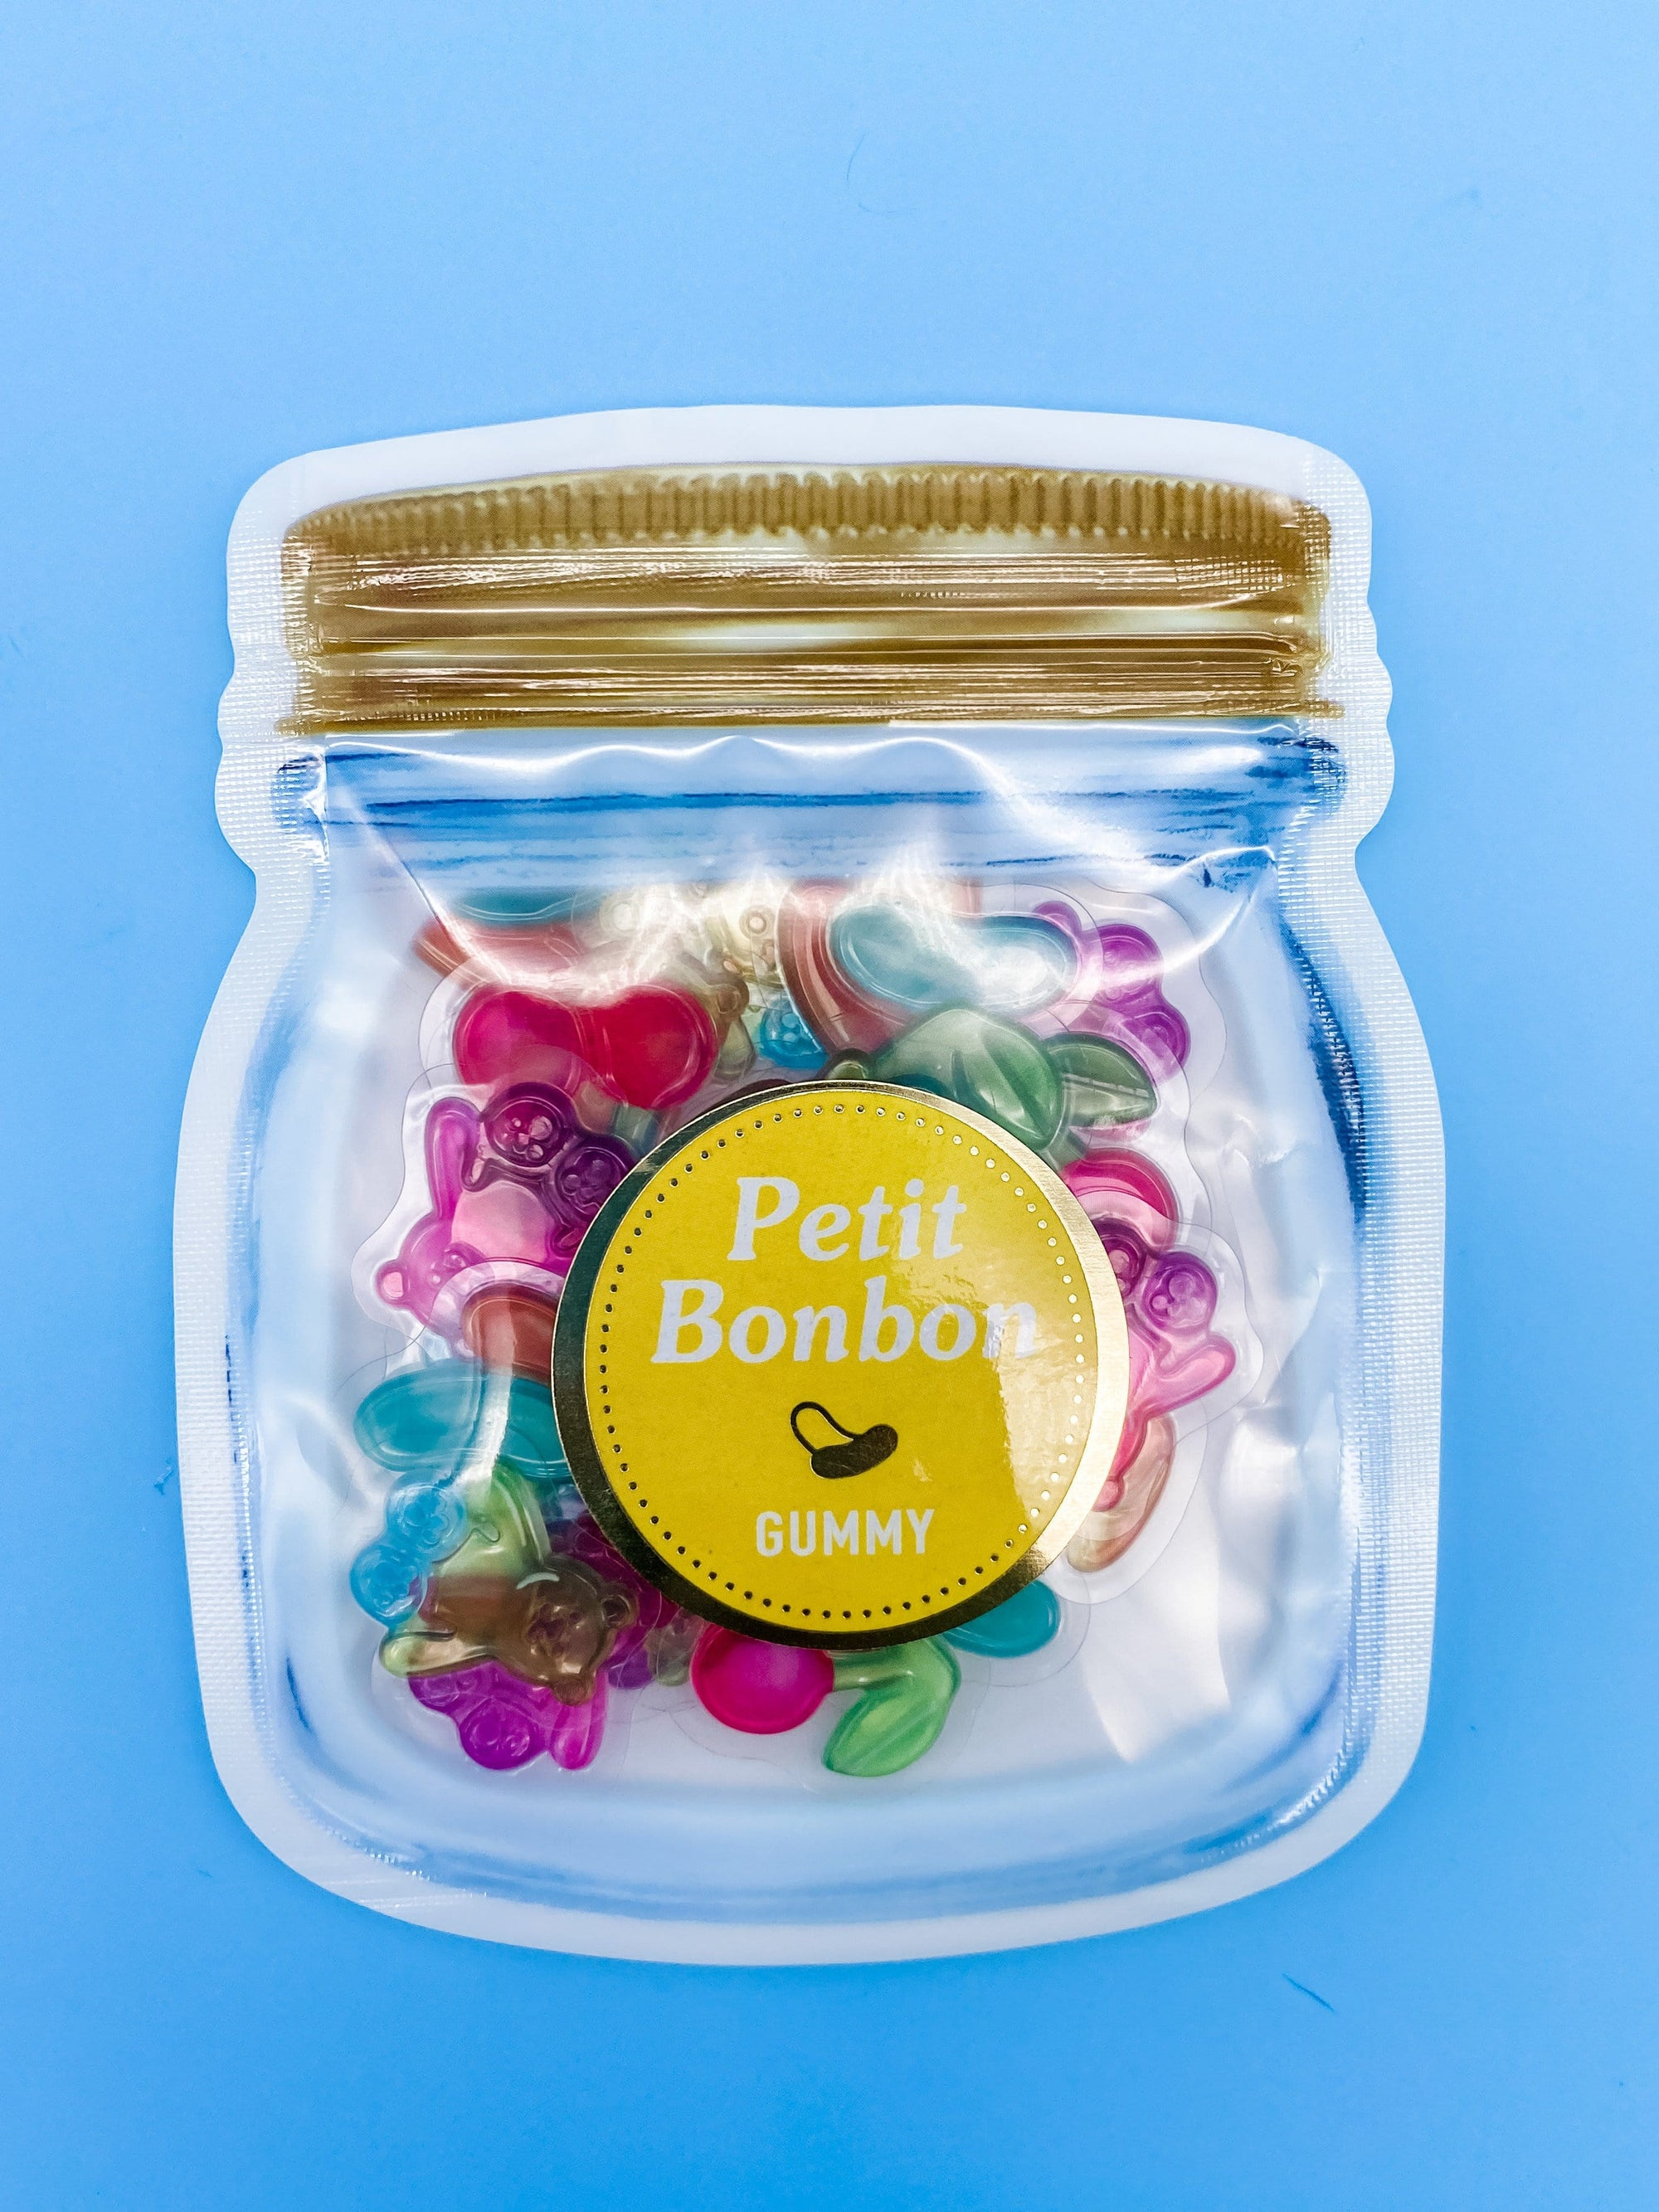 Petit Bonbon Gummy Sticker Flakes Sack